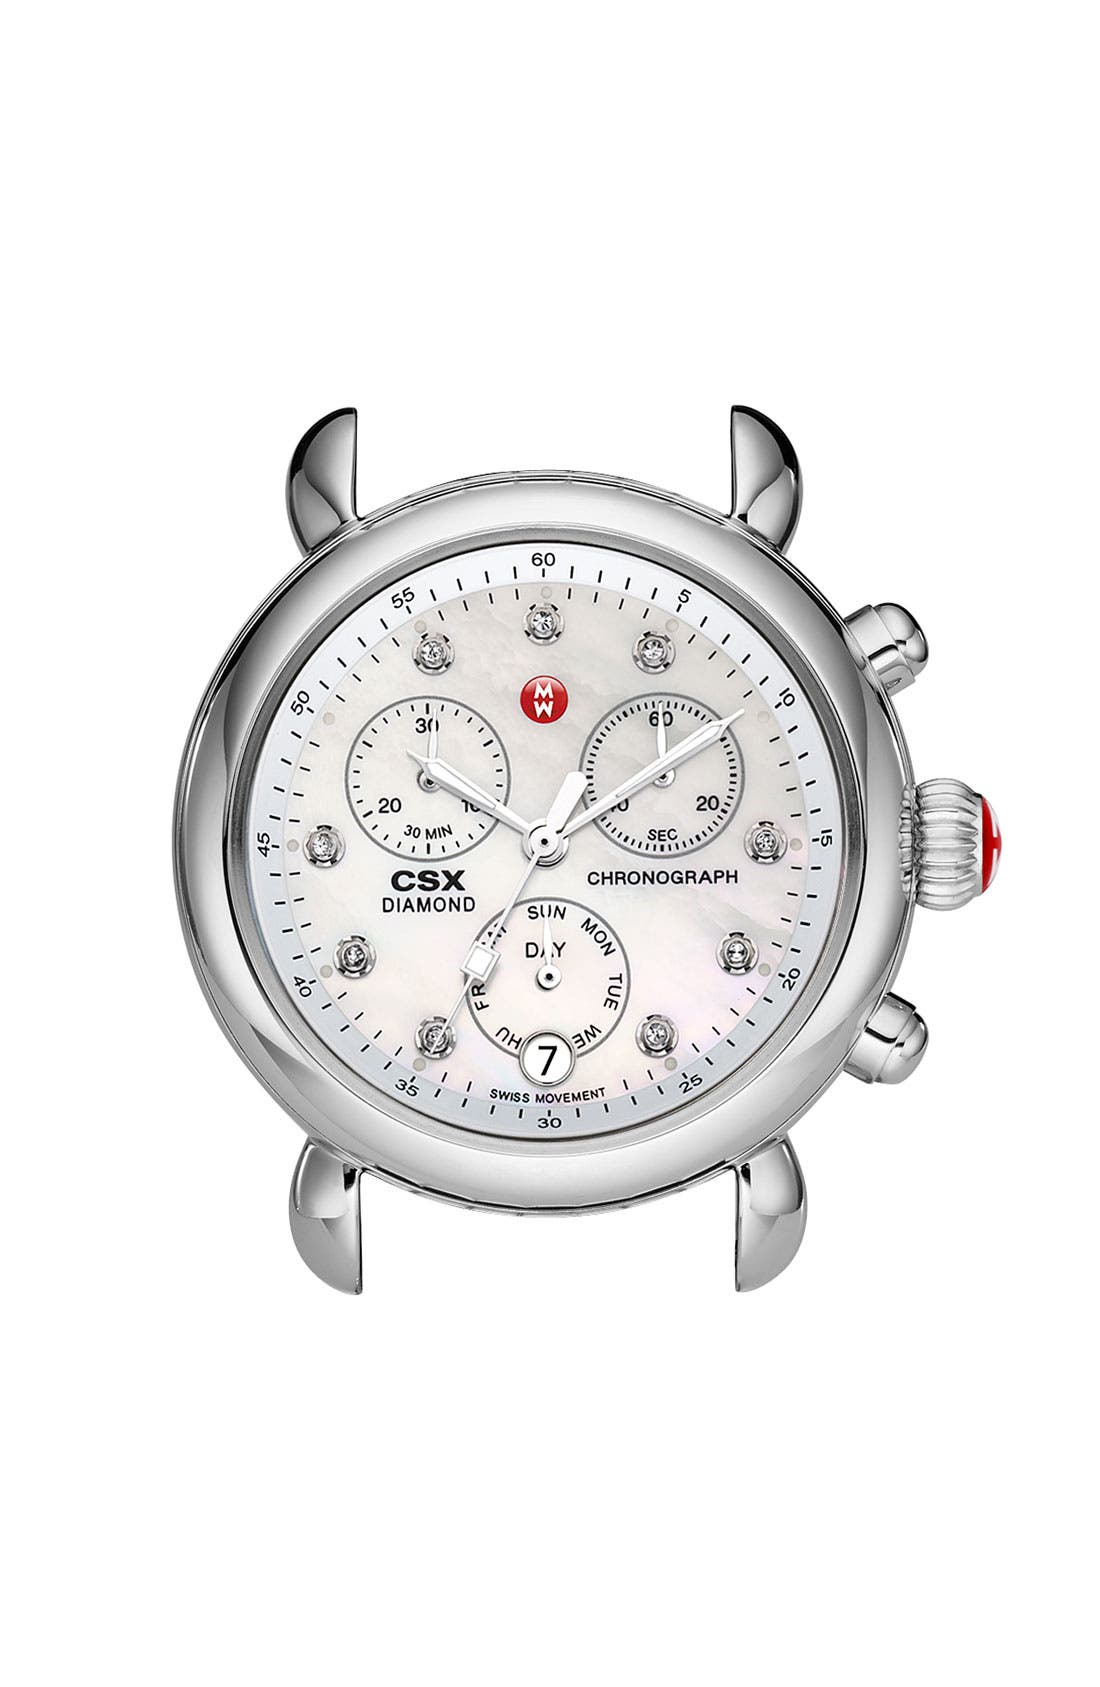 Alternate Image 1 Selected - MICHELE 'CSX-36' Diamond Dial Watch Case & 18mm White Patent Leather Strap